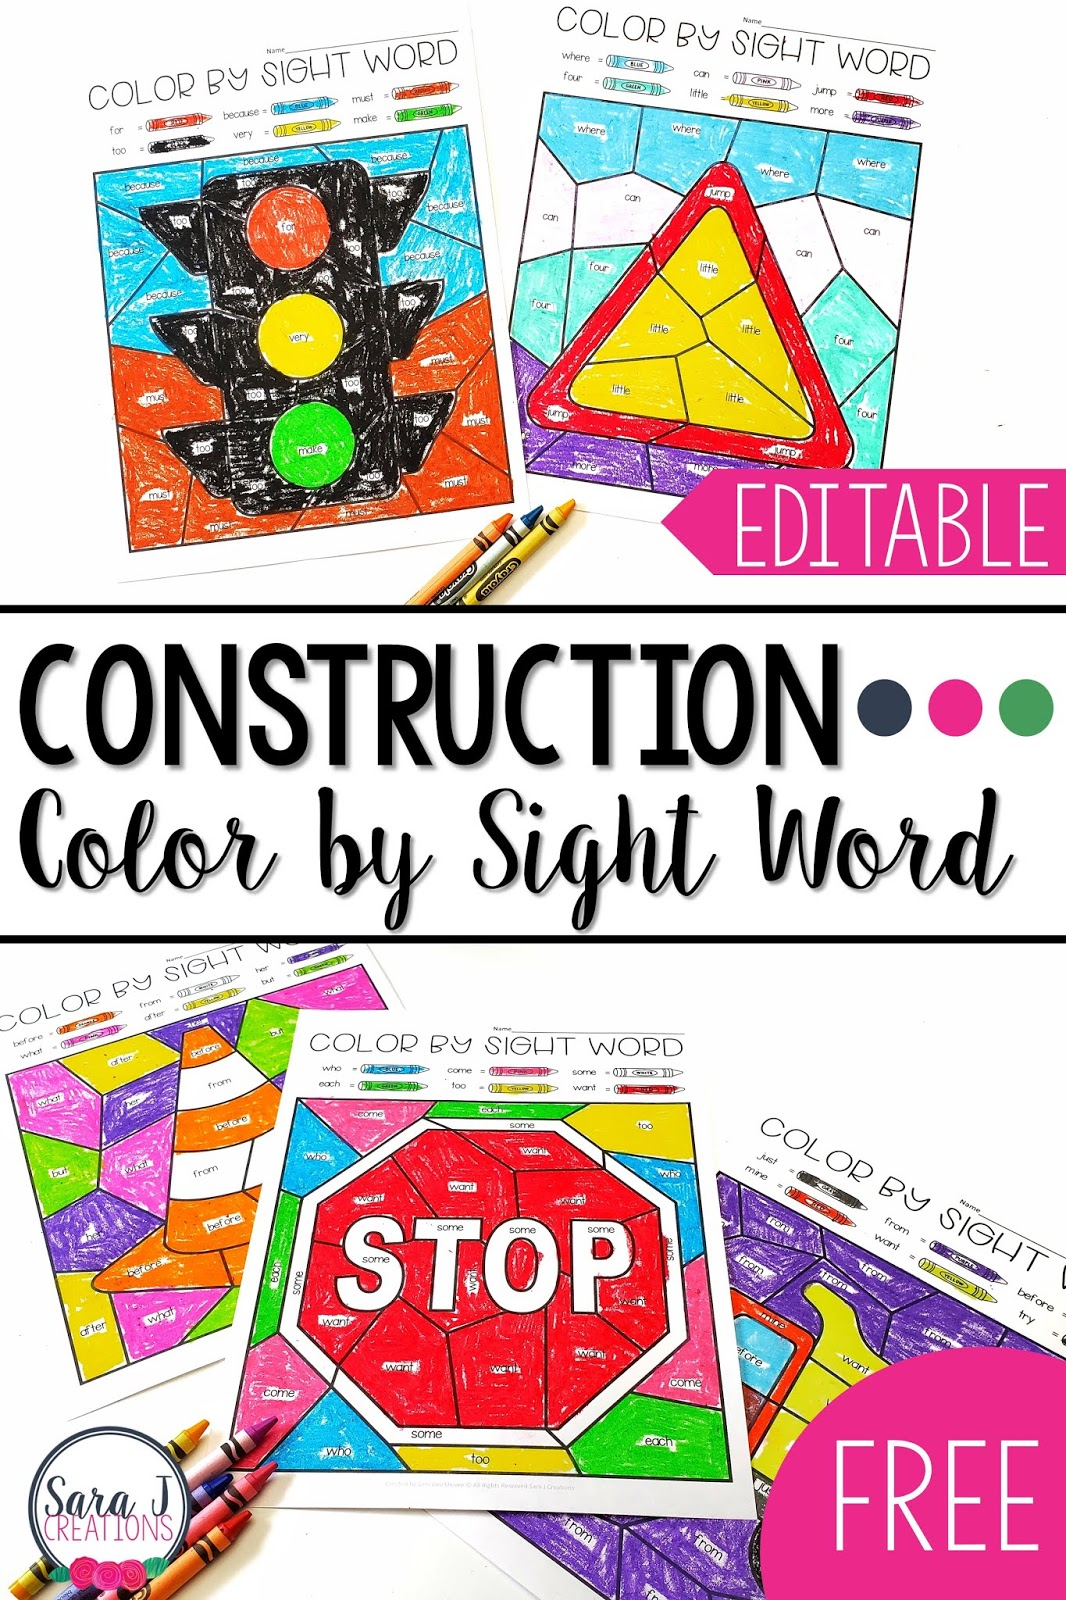 Construction Color by Sight Word Editable Coloring Pages. These construction themed sight word worksheets are editable so you can type in the exact words you want your students to practice. How awesome?! Grab these free printables to use with your kindergarten, first grade, or second grade class. Don't miss out on this fun freebie and the other construction freebies that are shared in this post.